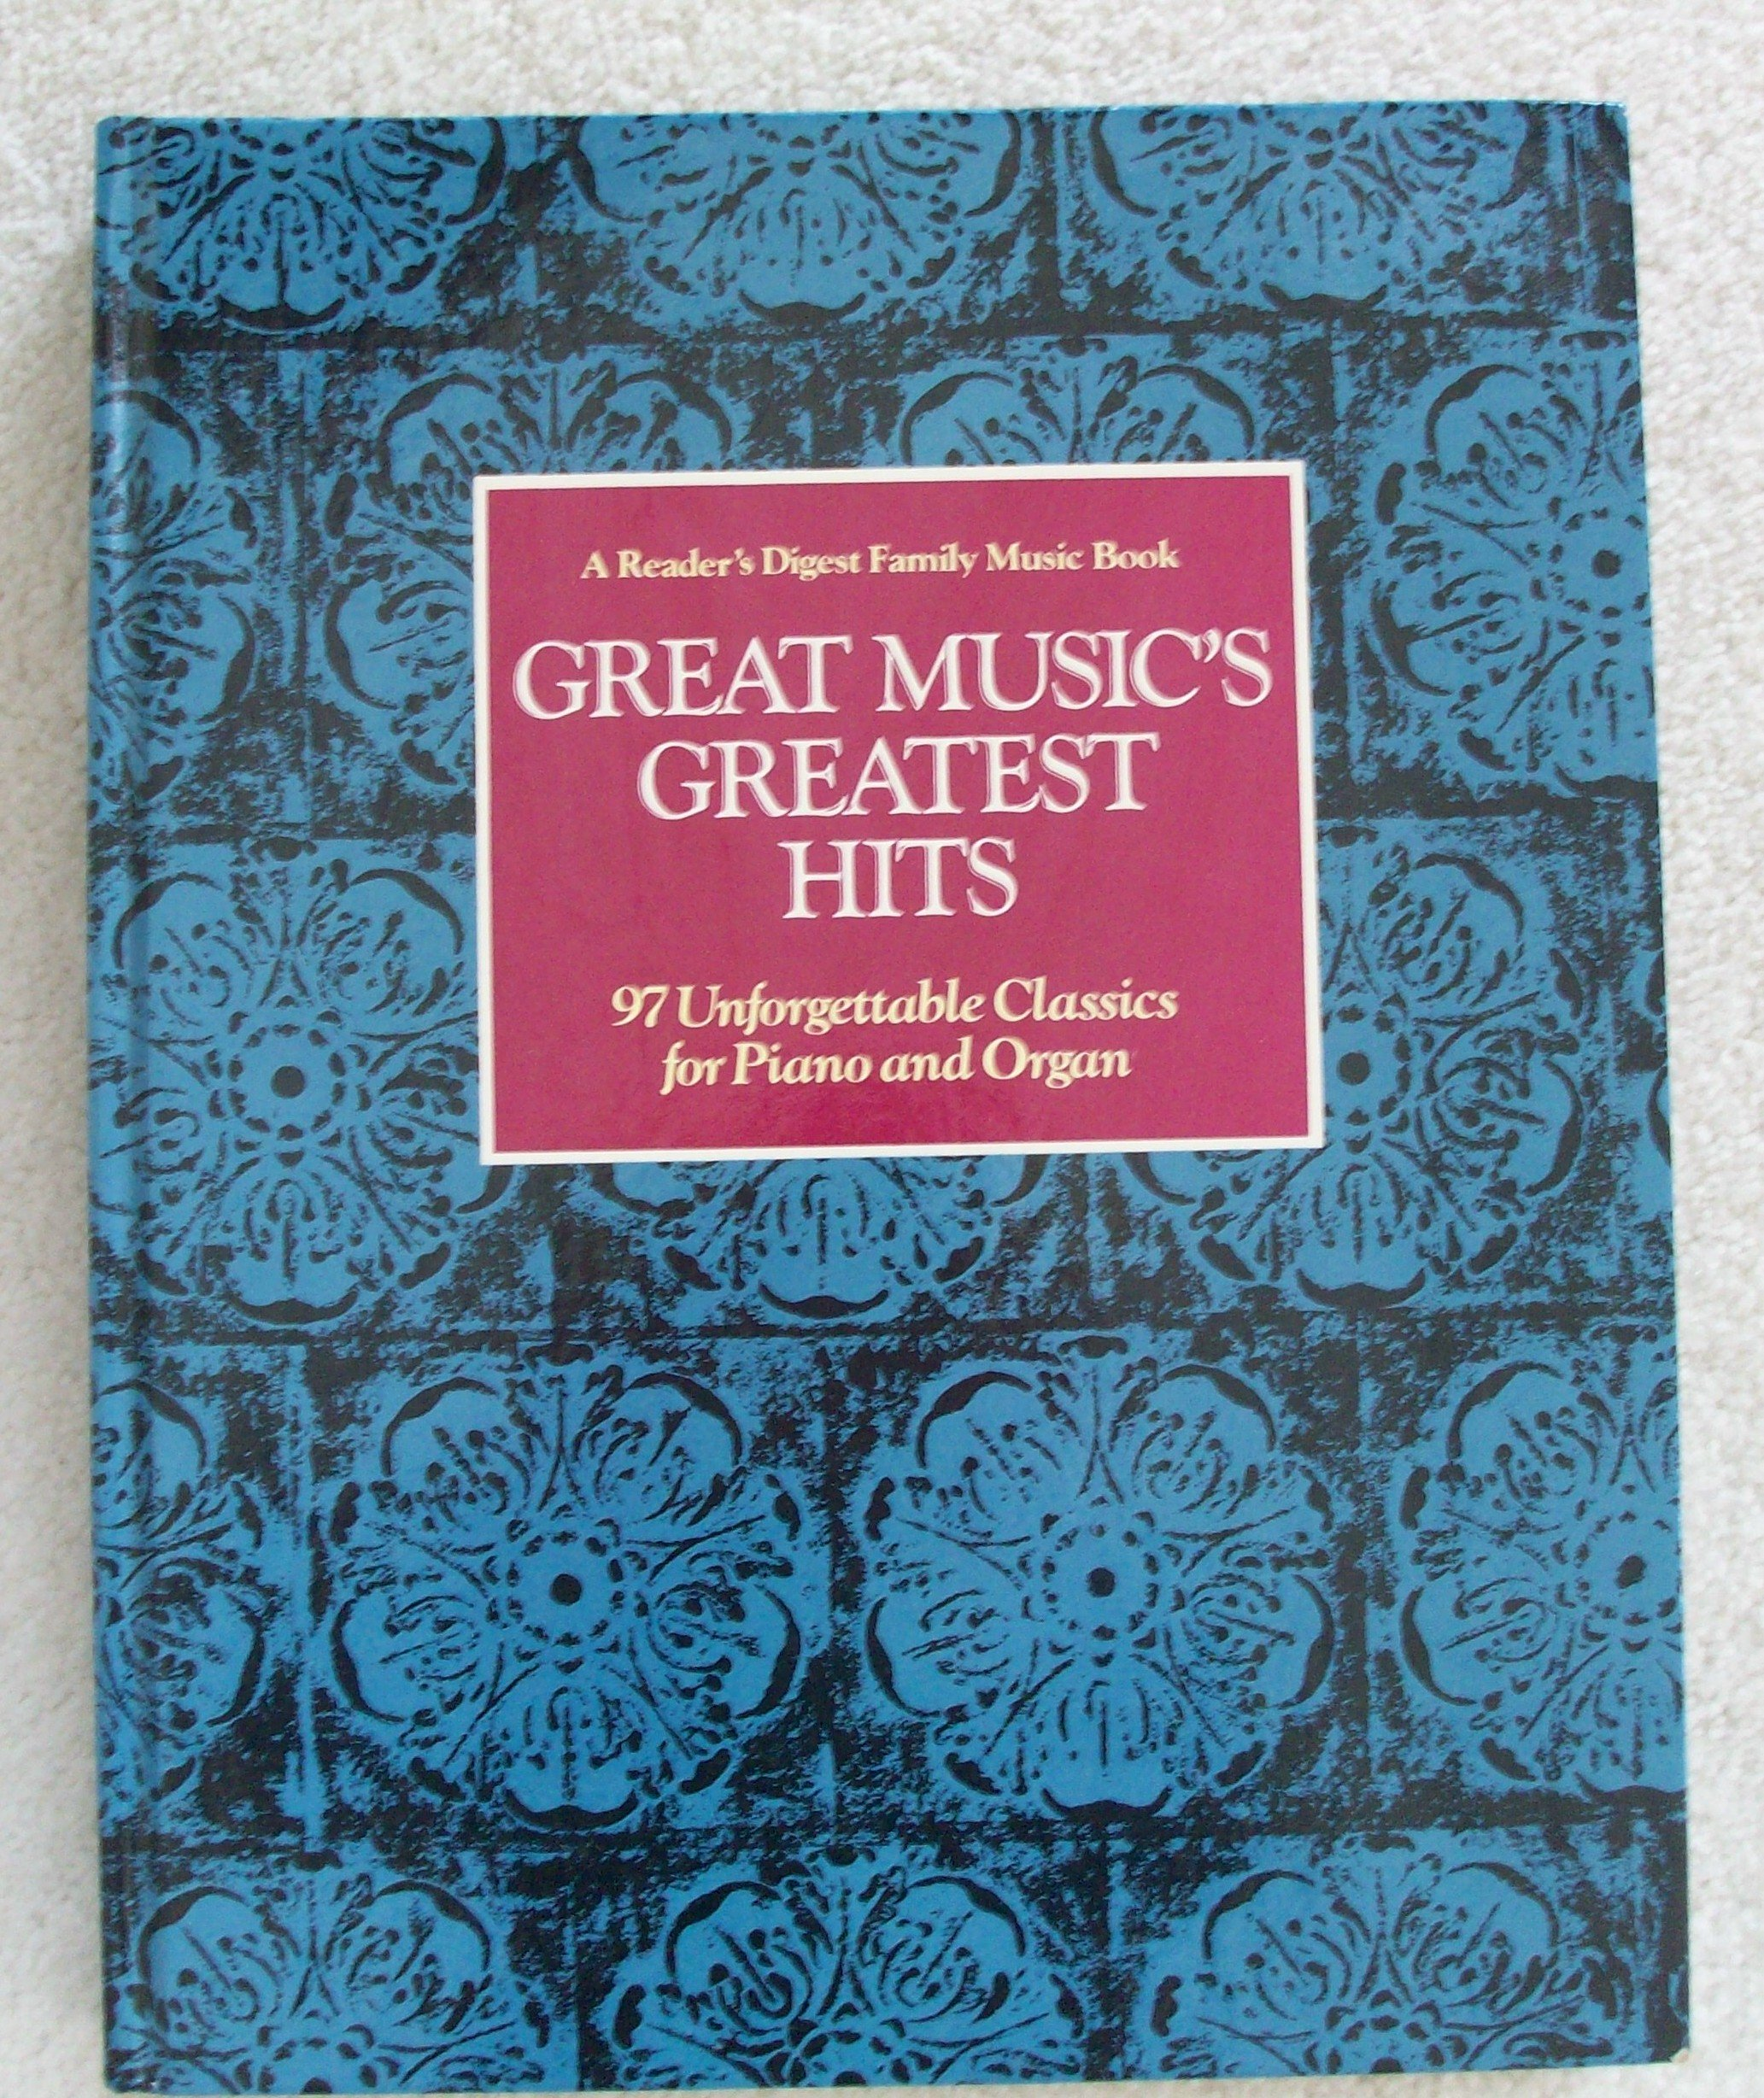 great musics greatest hits 97 unforgettable classics for piano and organ a readers digest family music book